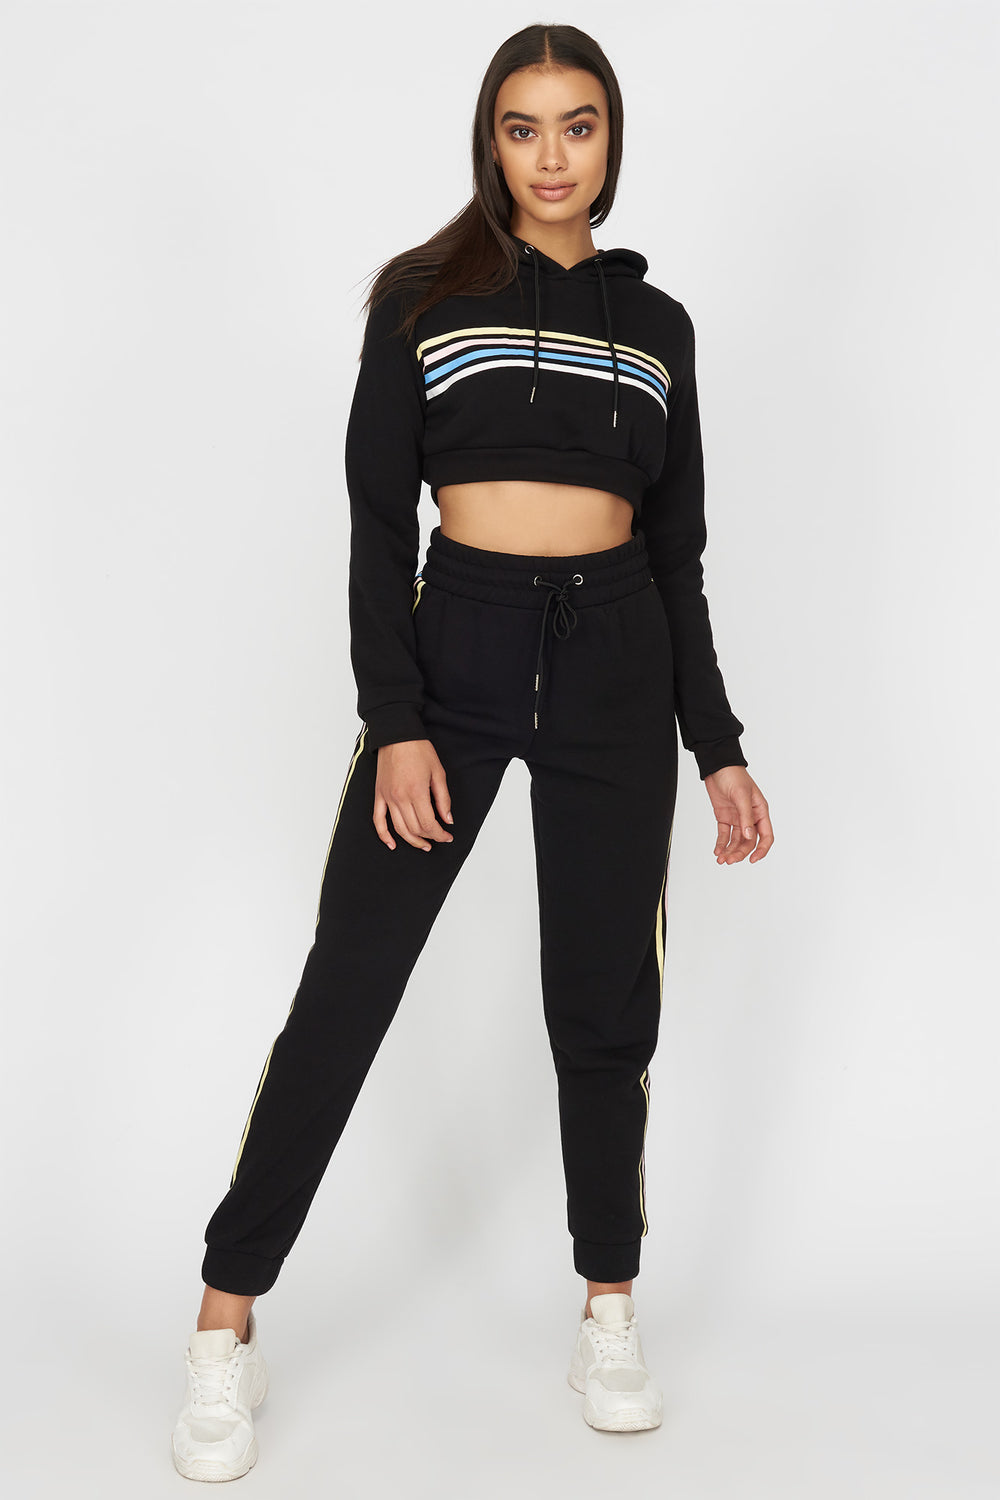 Tricolour Striped Cropped Hoodie Black